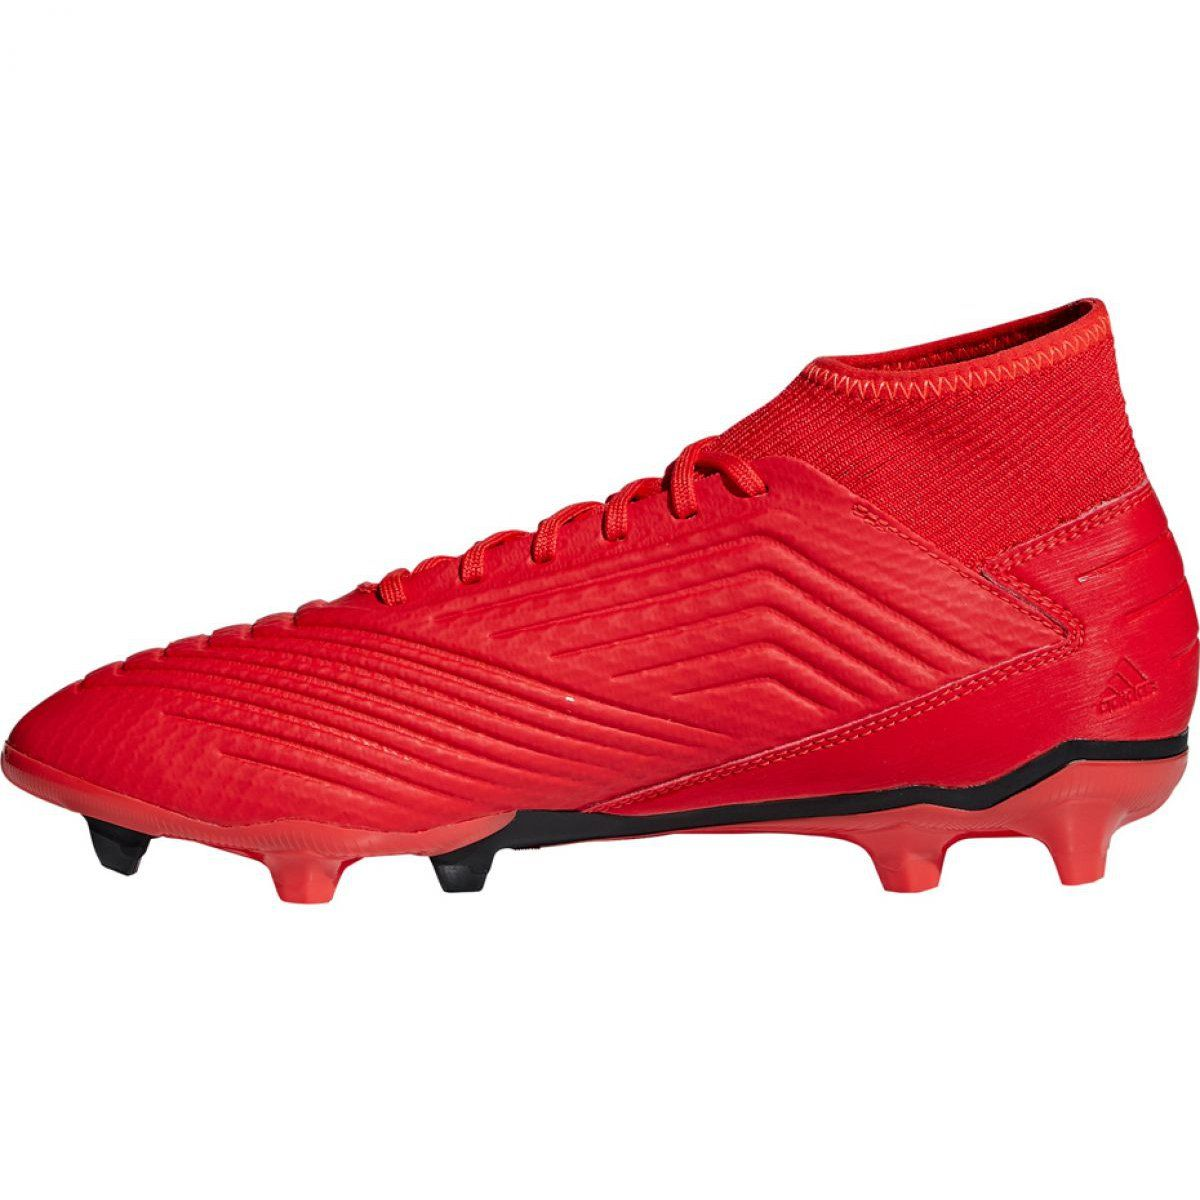 Football Boots Adidas Predator 19 3 Fg M Bb9334 Mens Football Boots Football Boots Shoes Mens